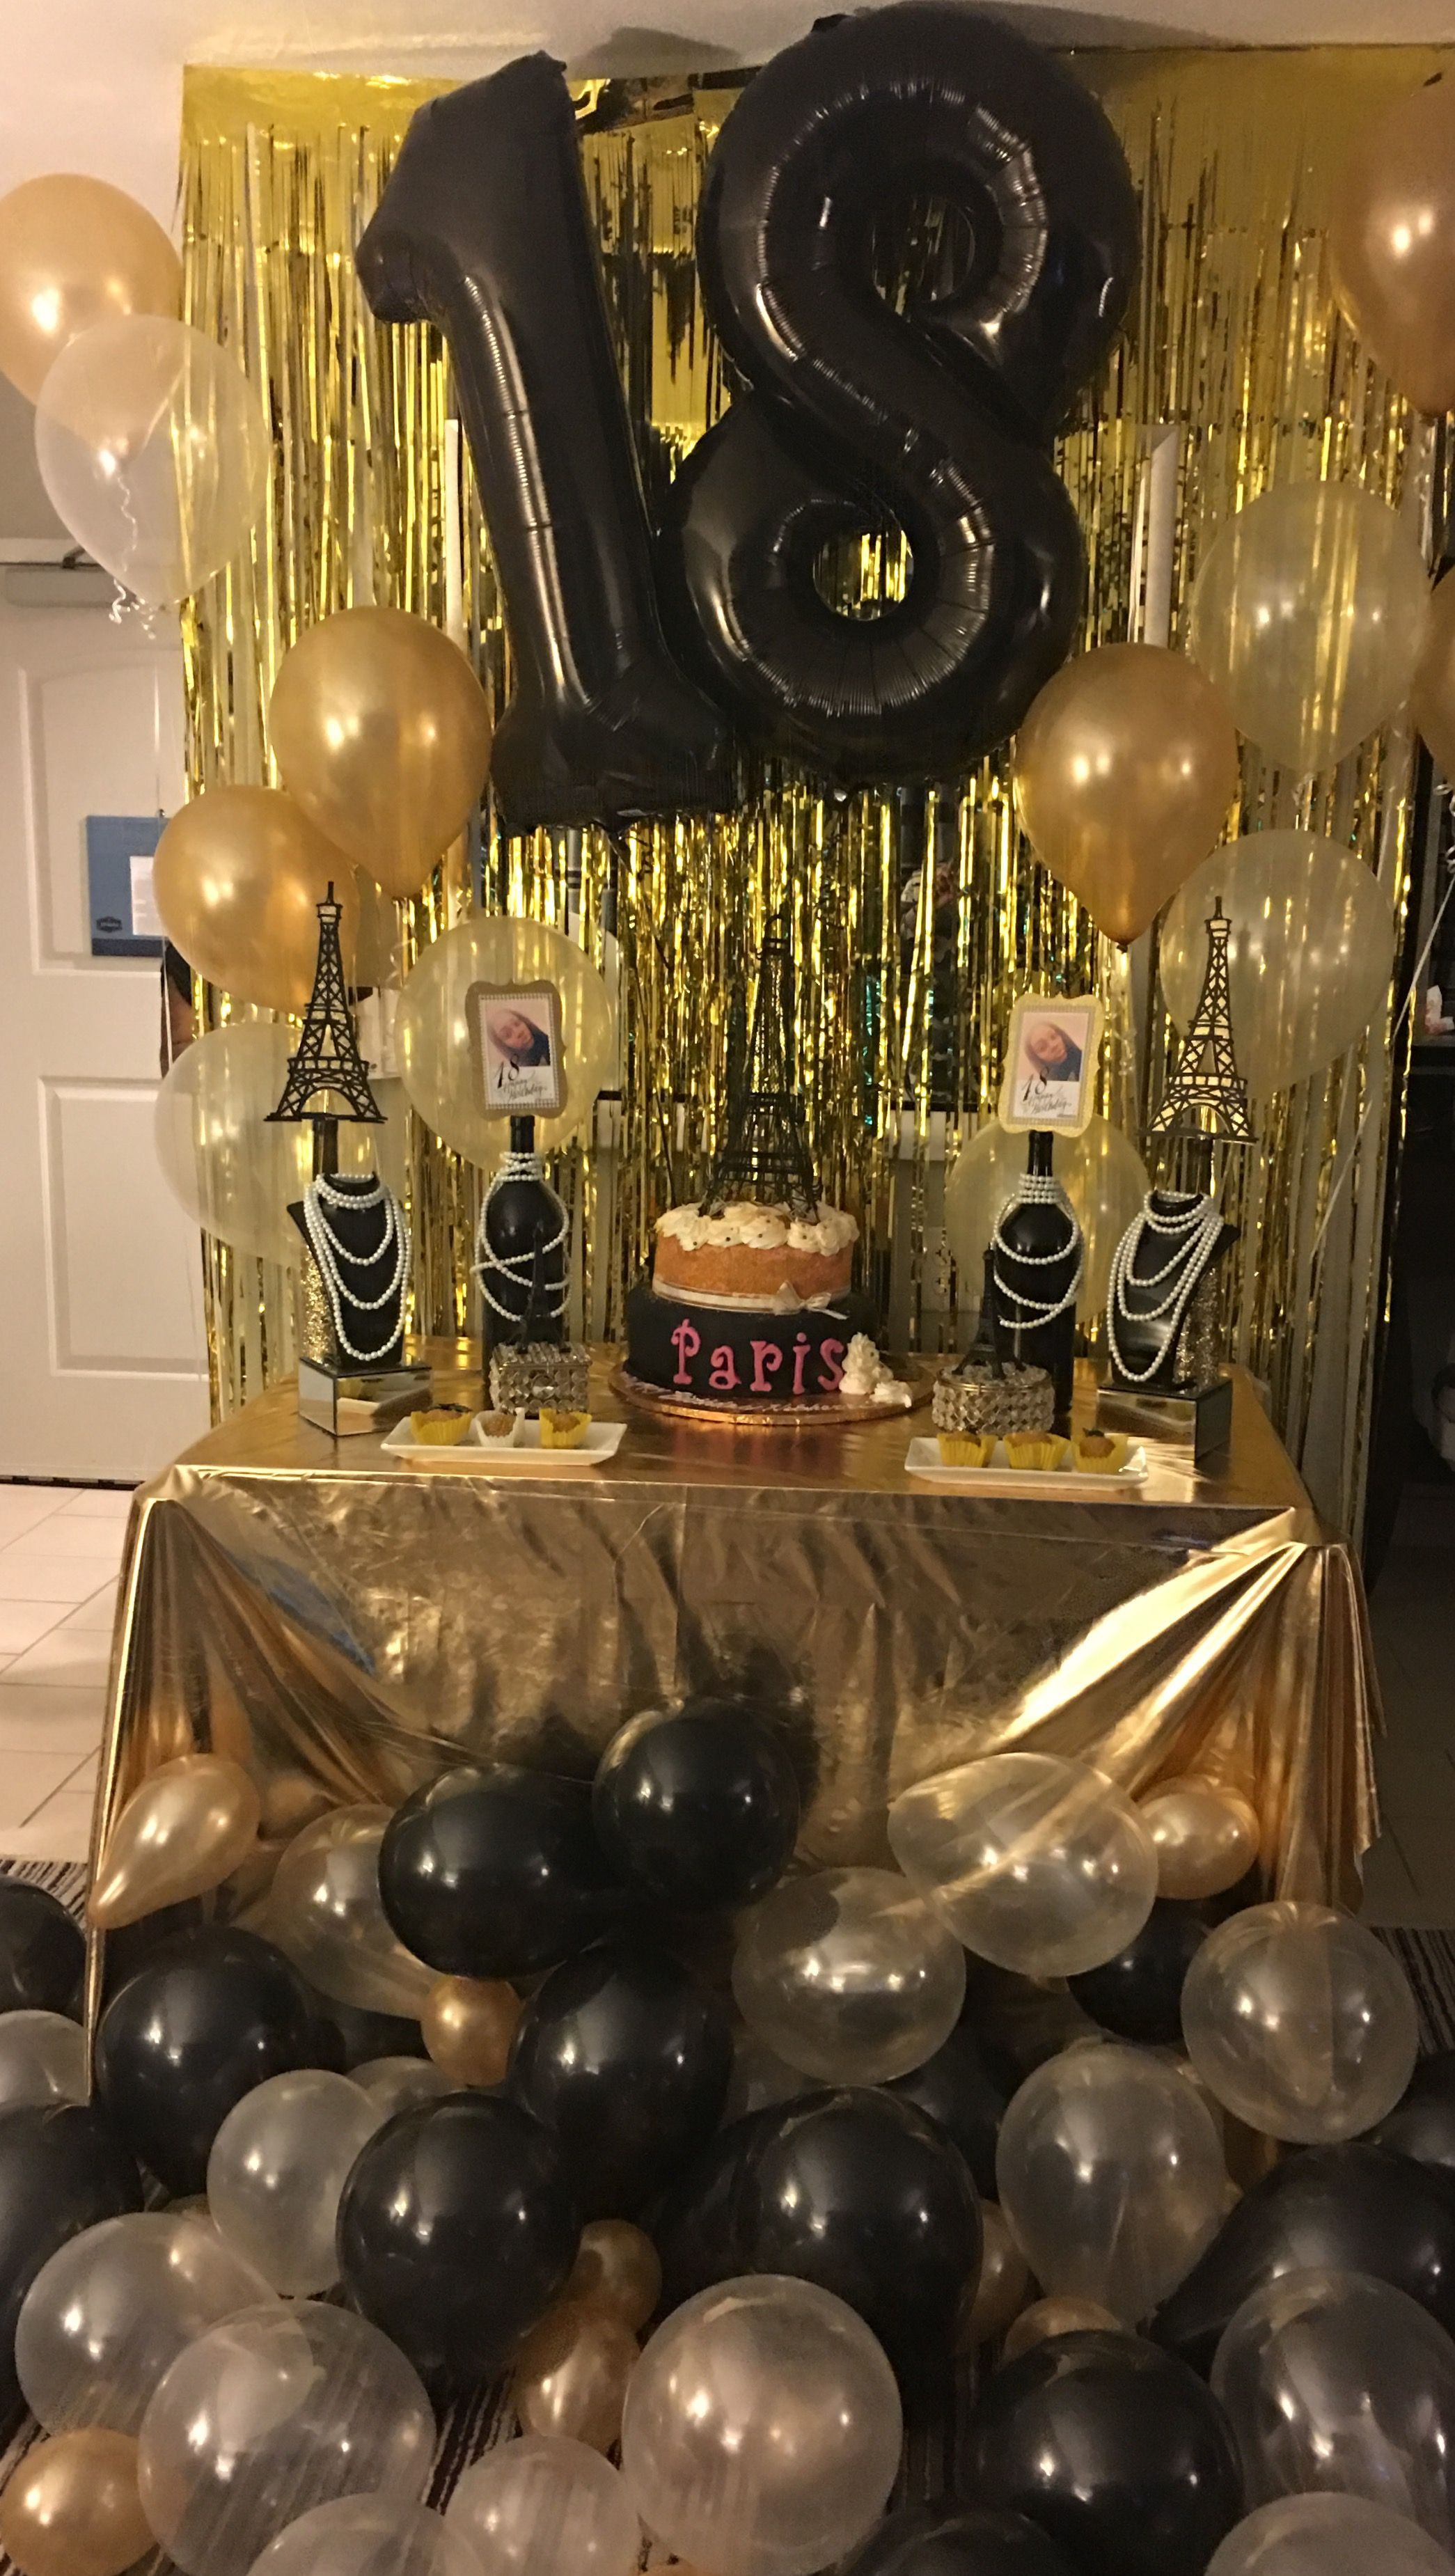 18th Birthday Party Decorations 18 Birthday Party Decorations 18th Birthday Party 18th Birthday Decorations